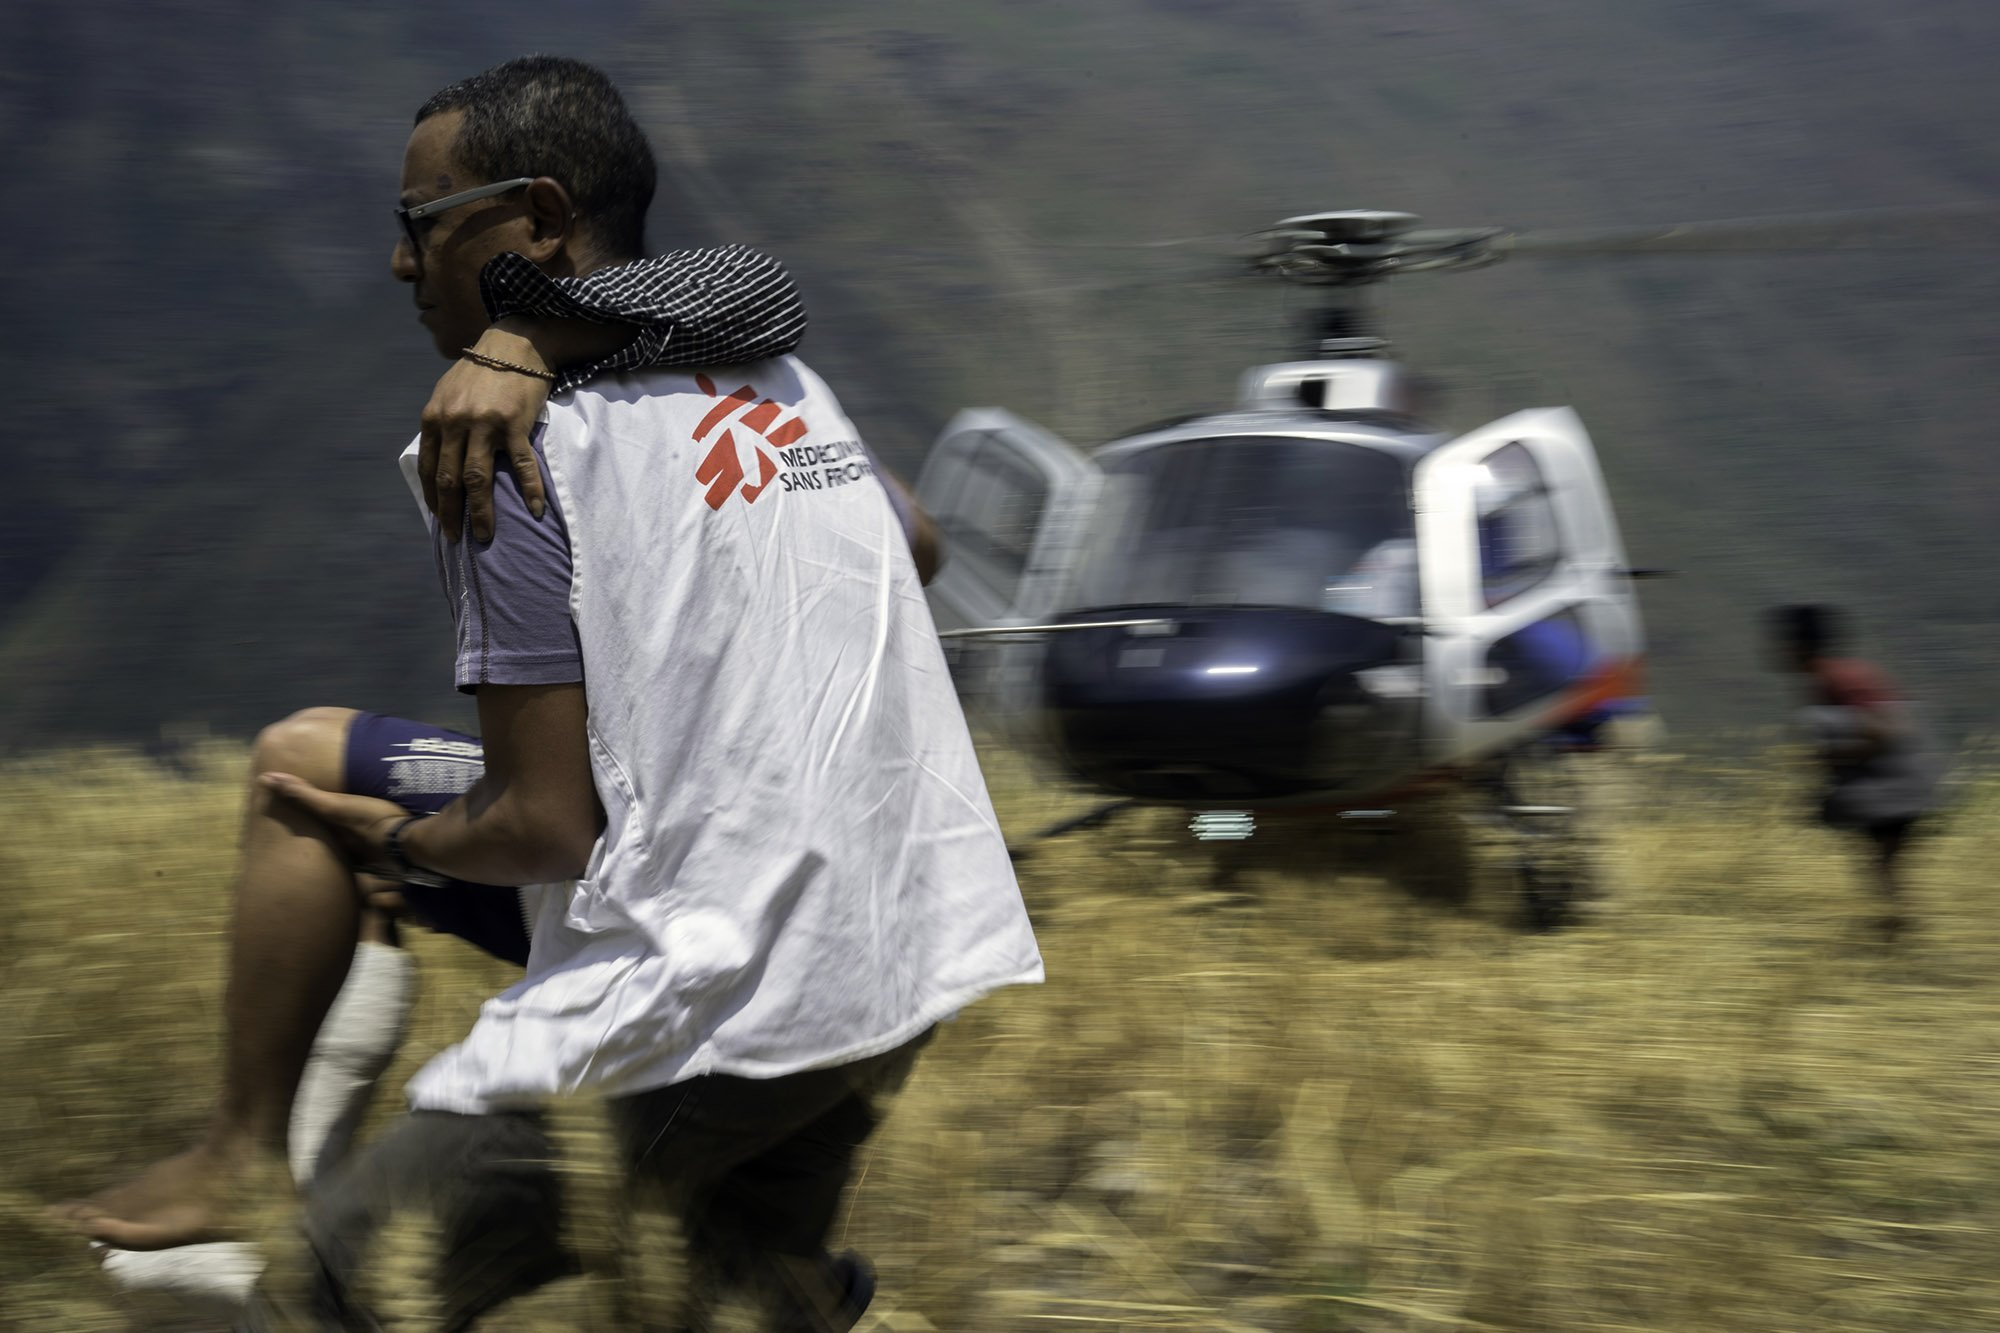 MSF worker carrying injured patient